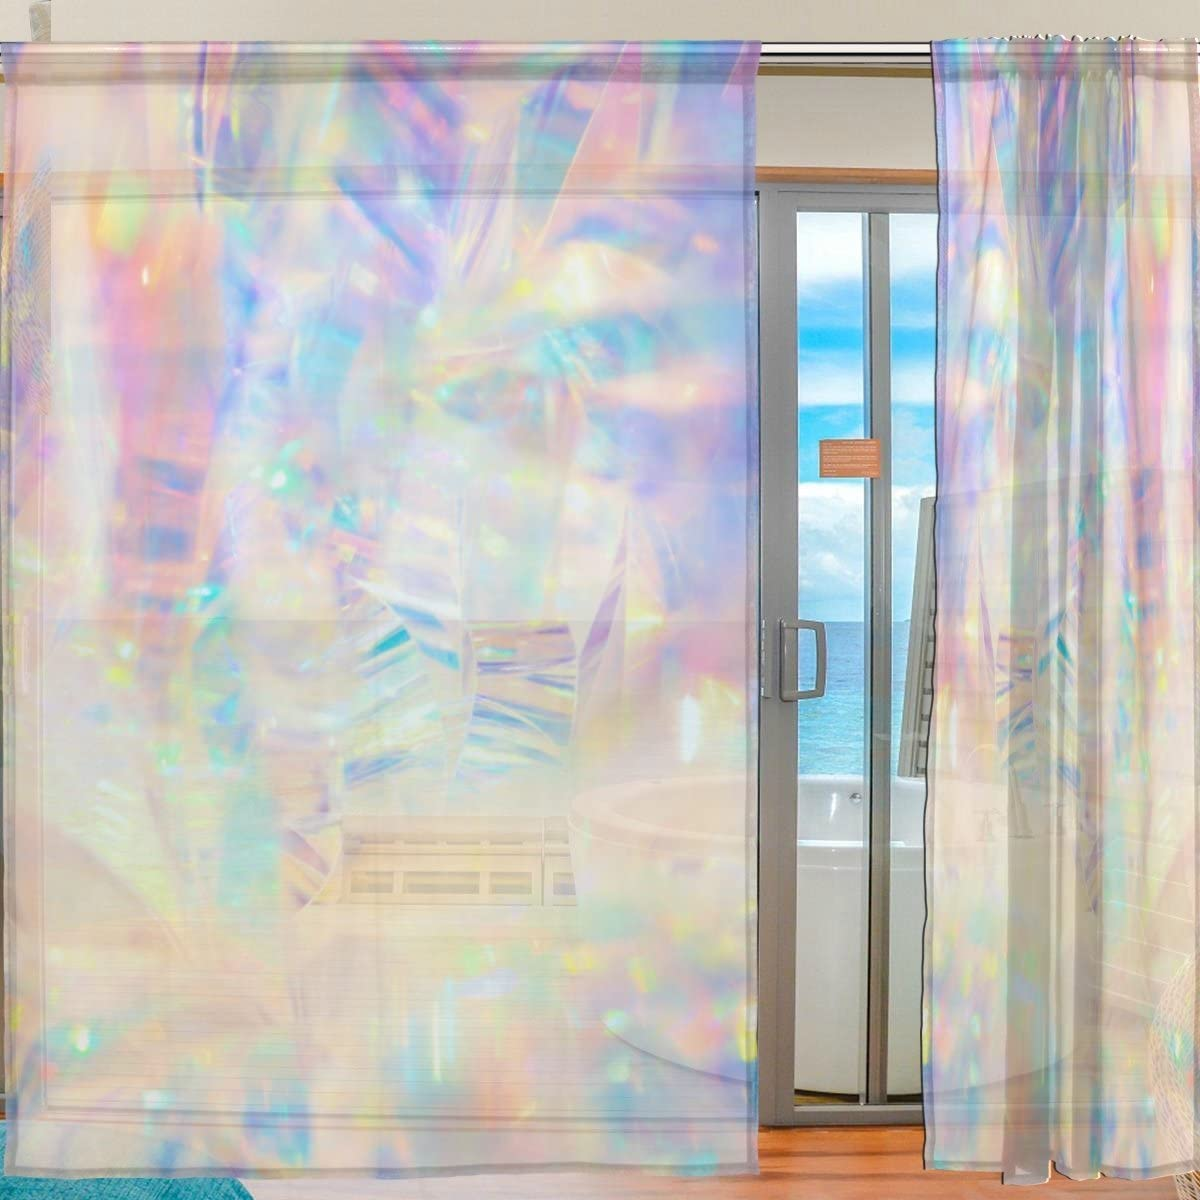 Floral Holographic Iridescent Metallic Semi Sheer Curtains Window Voile Drapes Panels Treatment-55x78in for Living Room Bedroom Kids Room, 2 Pieces